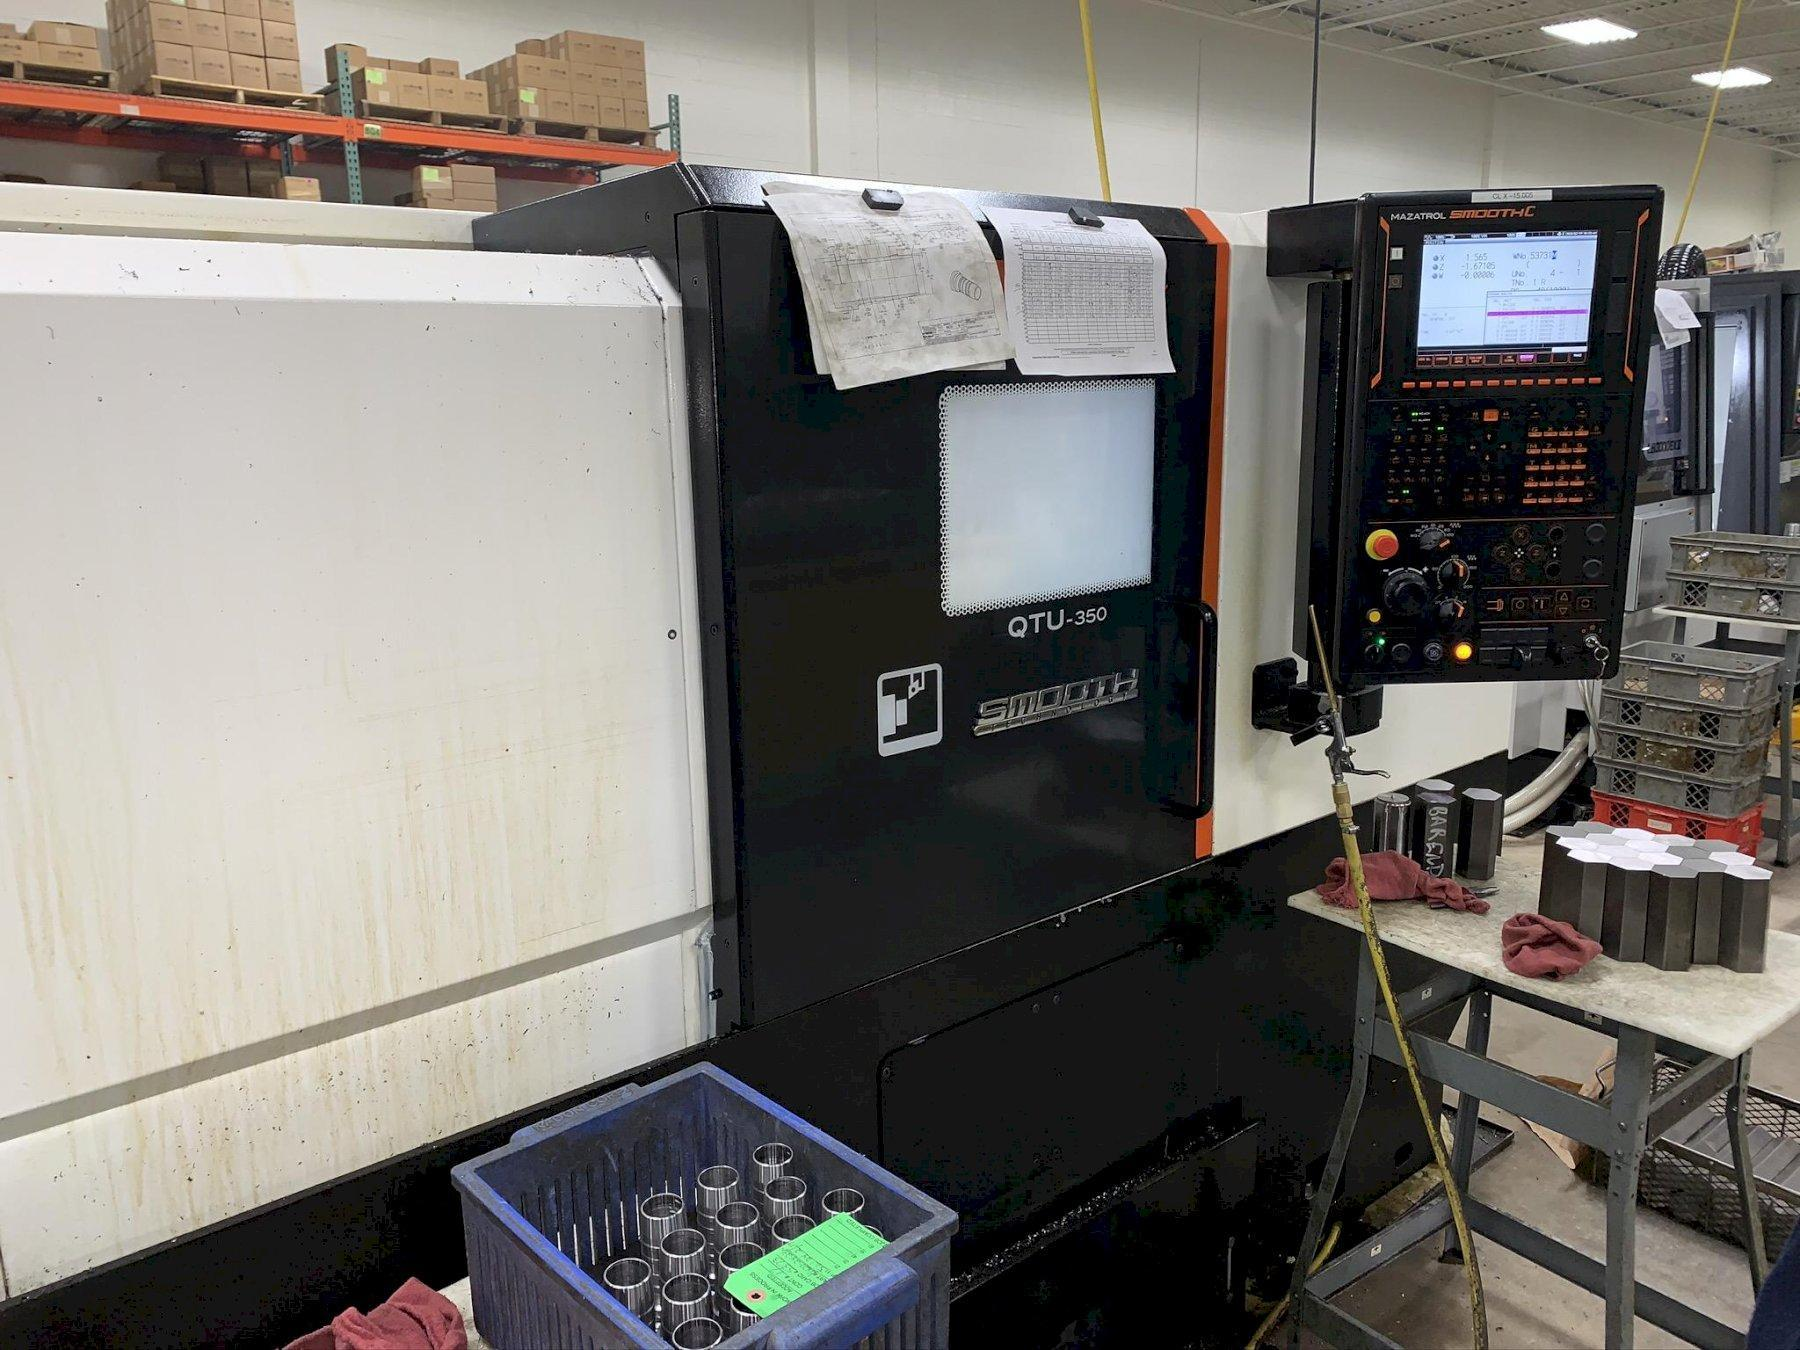 "Mazak QTU350 CNC Lathe, SMOOTH C,12"" Chuck, 27.4"" Swing, 3"" Bar Cap, 12 Position Turret, Tailstock, Tool Eye, Chip Conv, 20 HP, Low Hrs, 2018 (2 Avail)"